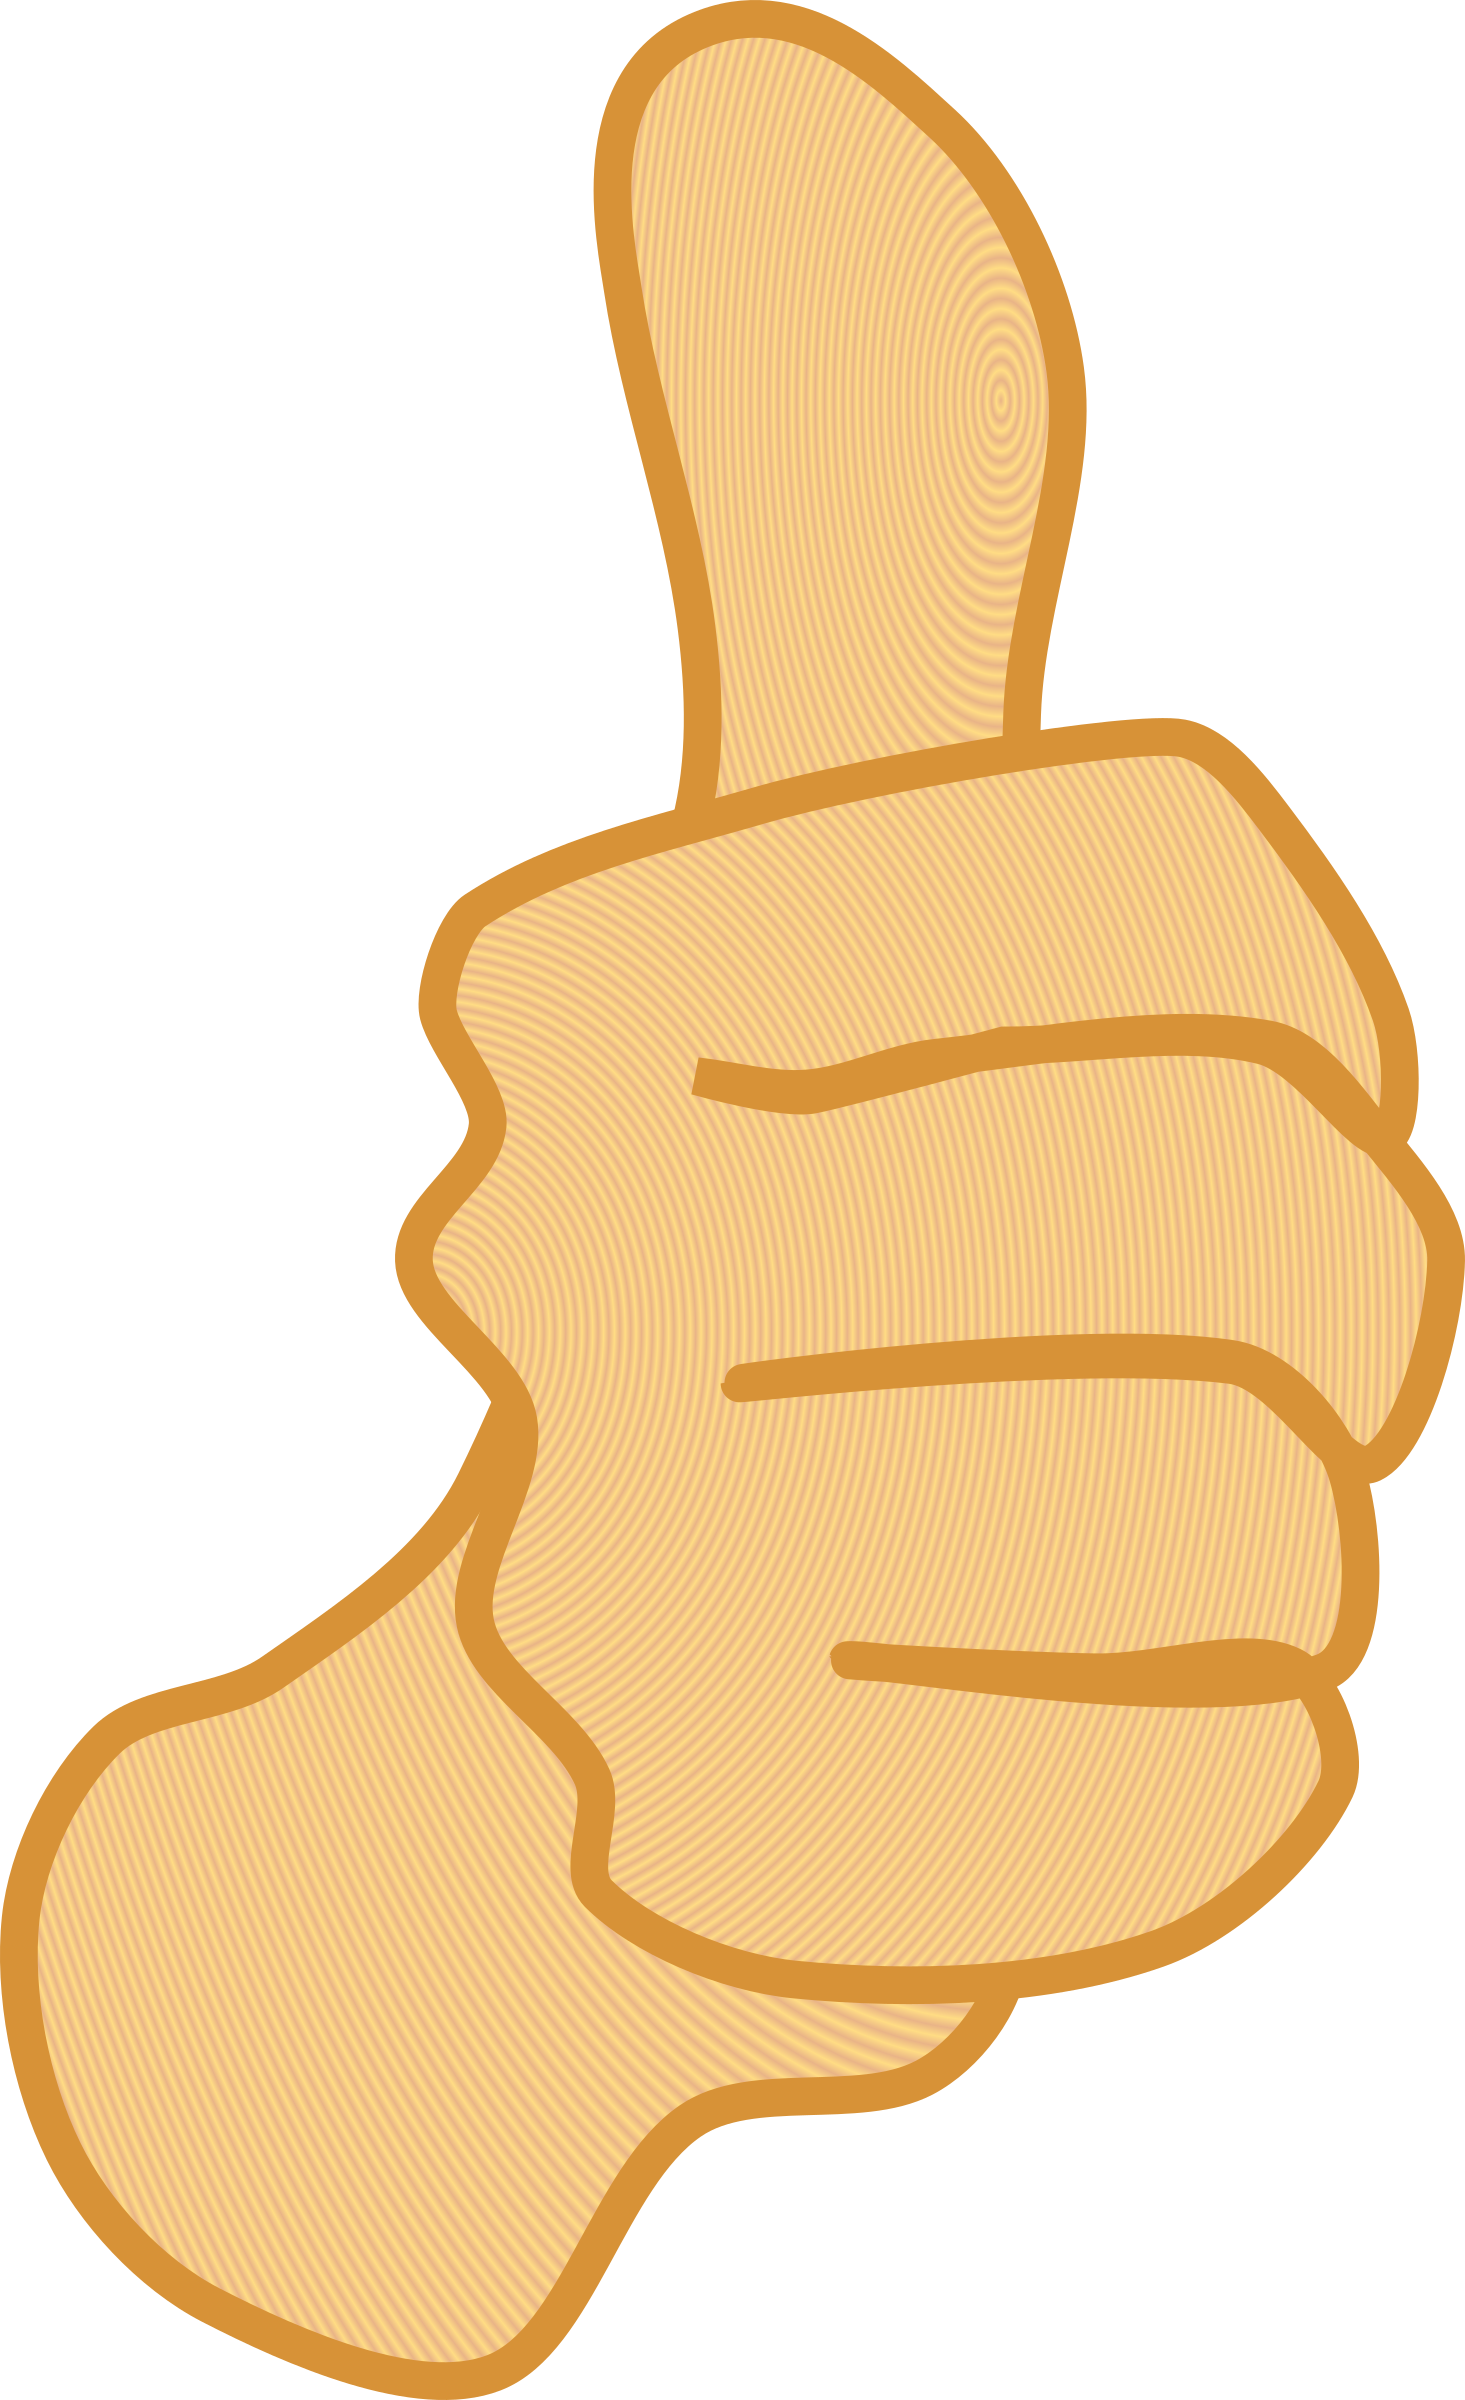 thumbs up nathan eady 01 by eady